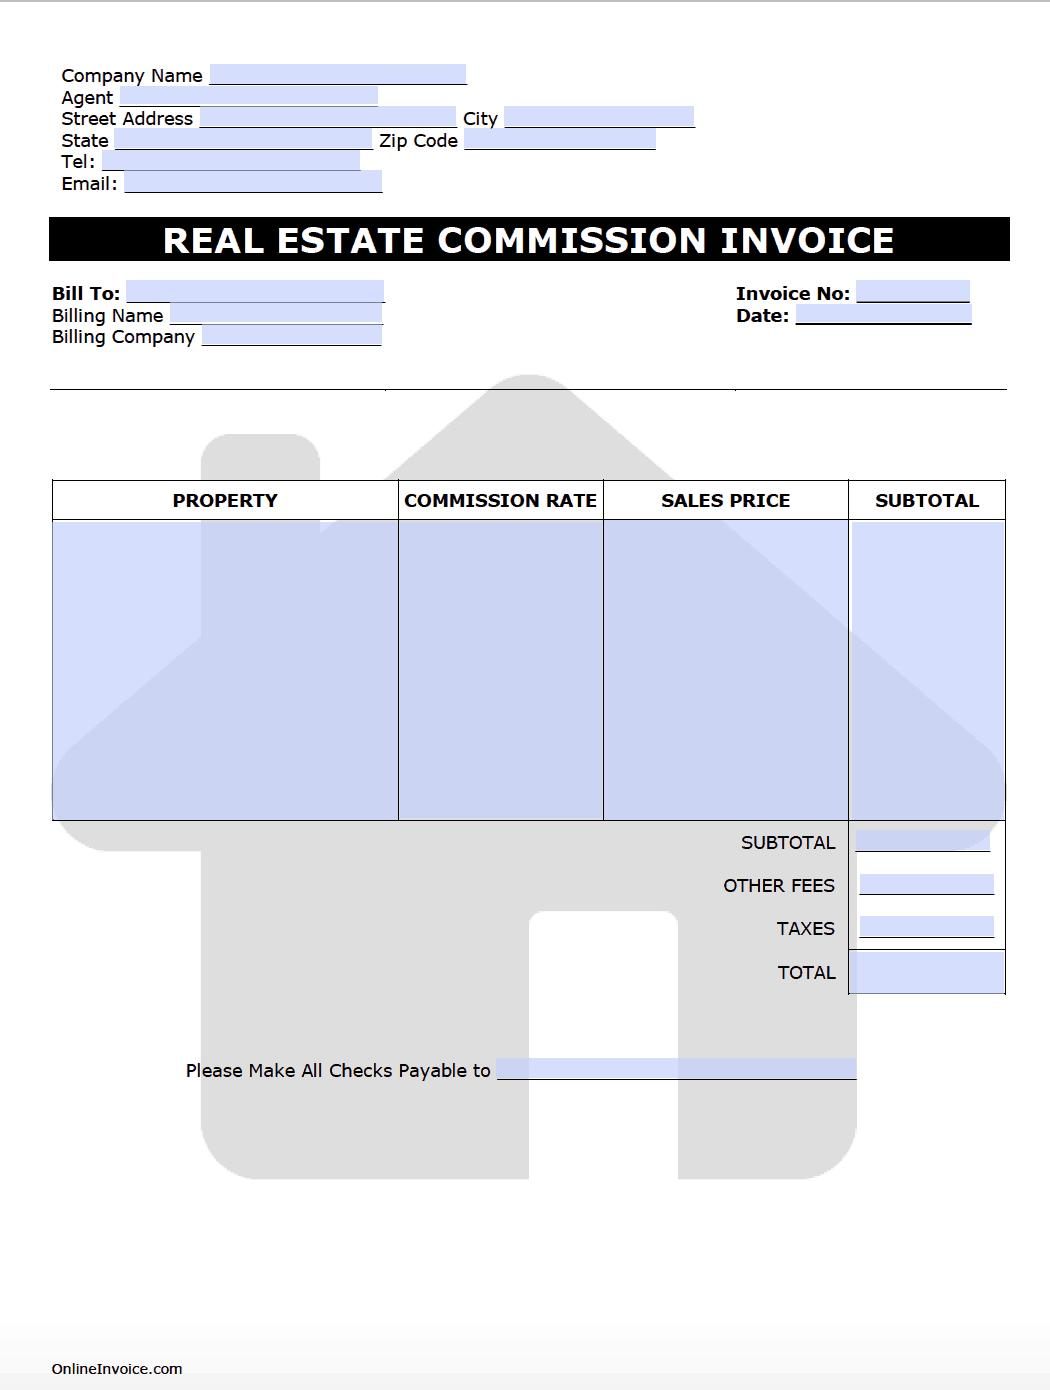 Commercial Real Estate Invoice Templates